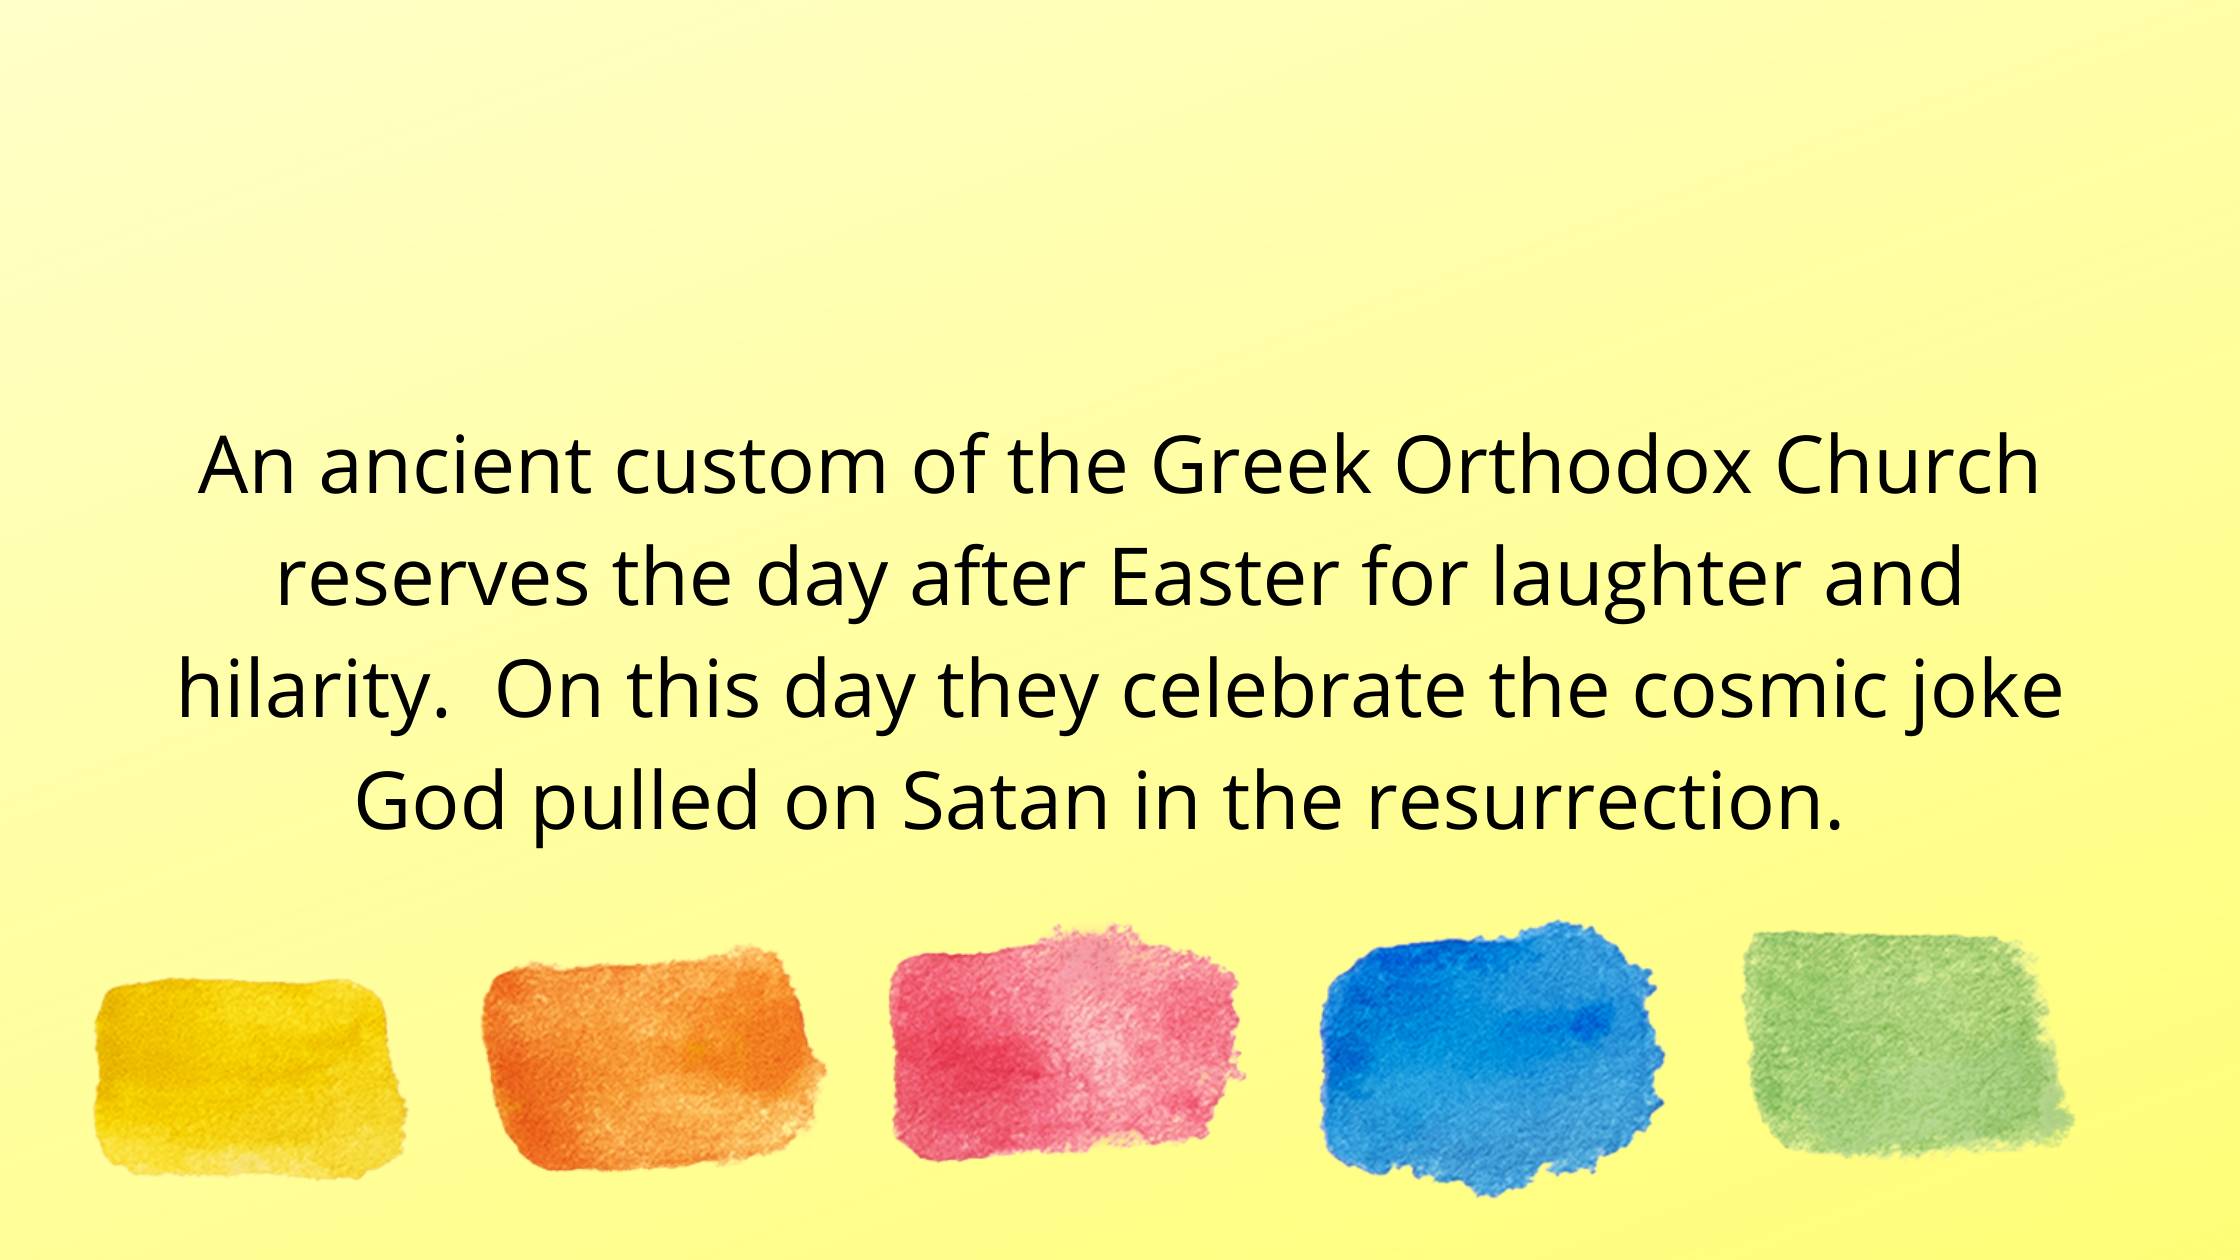 An ancient custom of the Greek Orthodox Church reserves the day after Easter for laughter and hilarity. On this day they celebrate the cosmic joke God